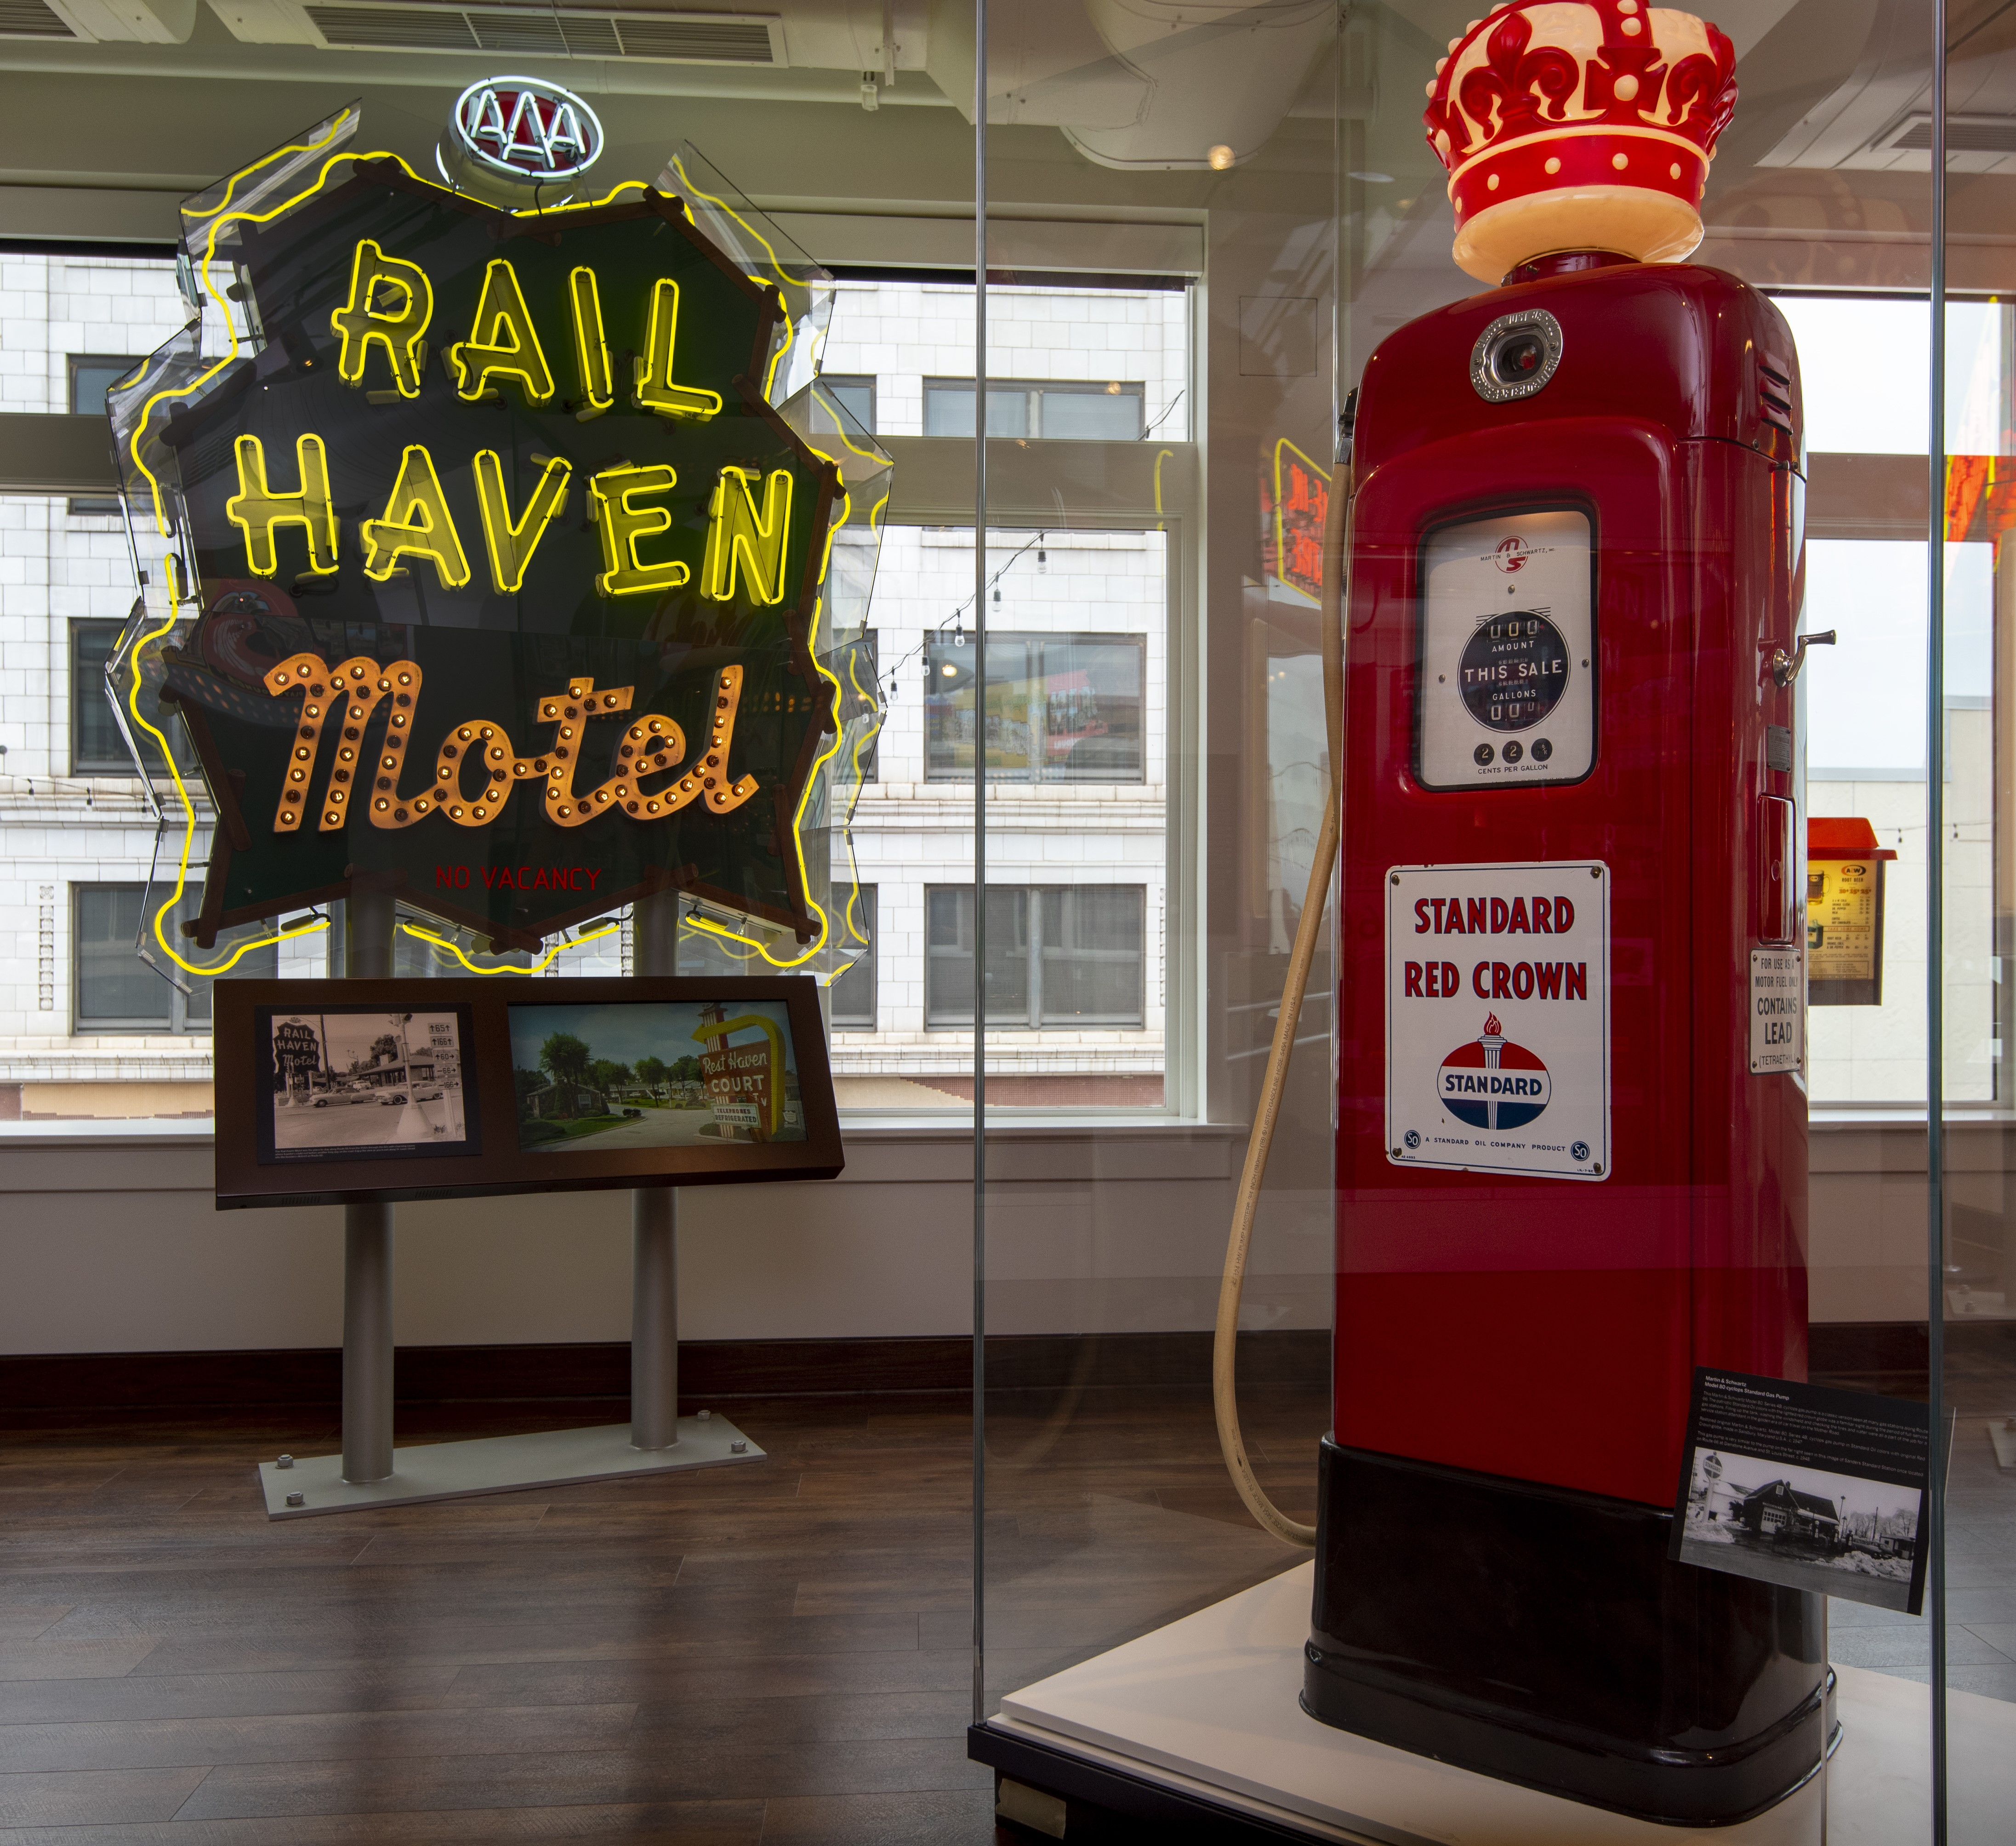 Rail Haven Motel & Standard Gas Pump